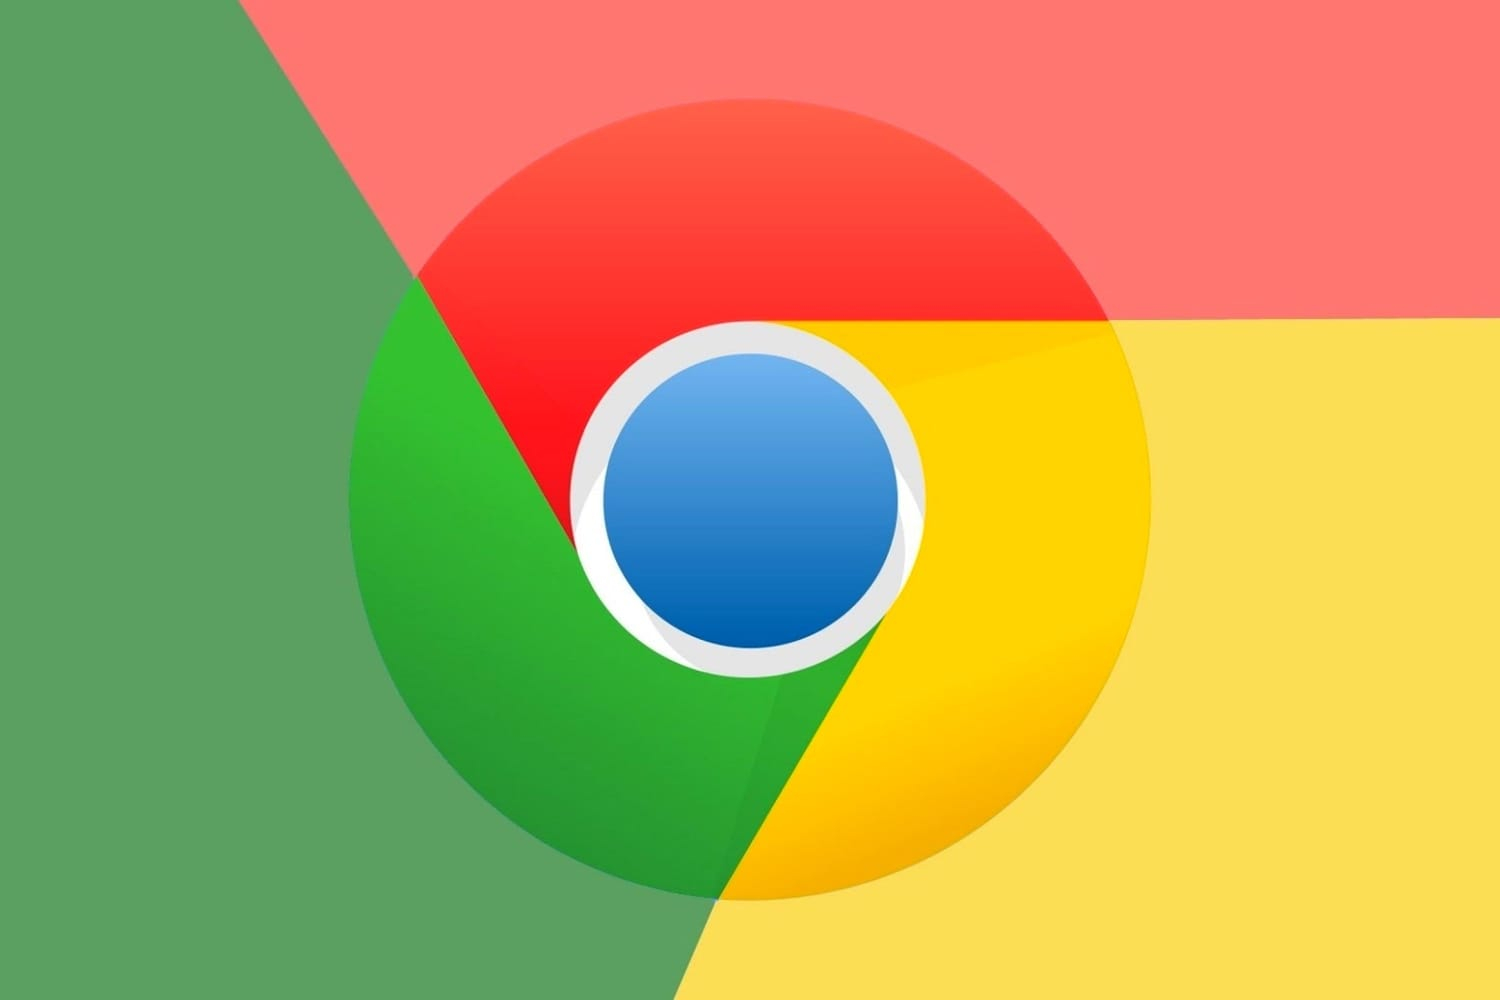 Google Chrome: быстрый браузер - play.google.com